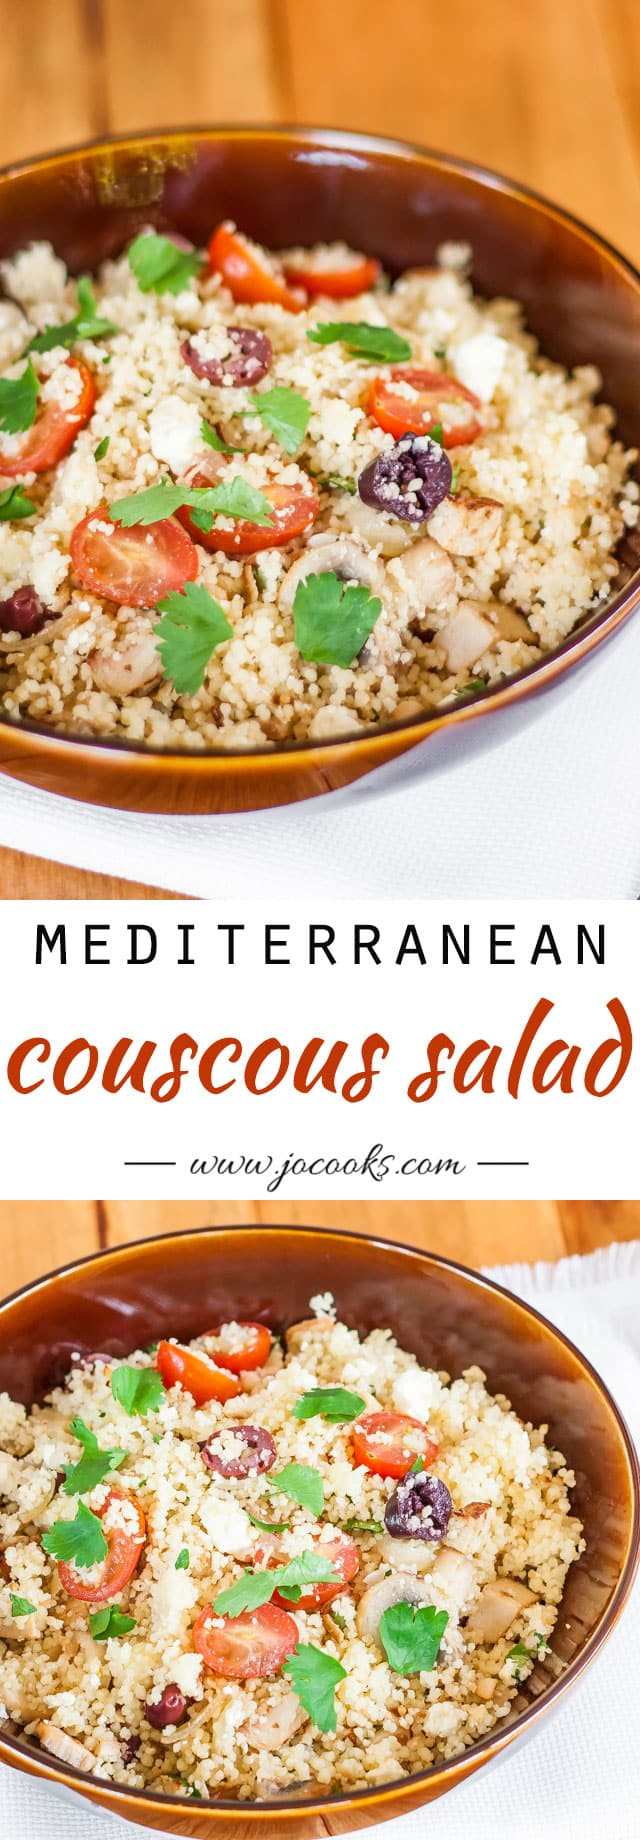 mediterranean-couscous-salad-collage